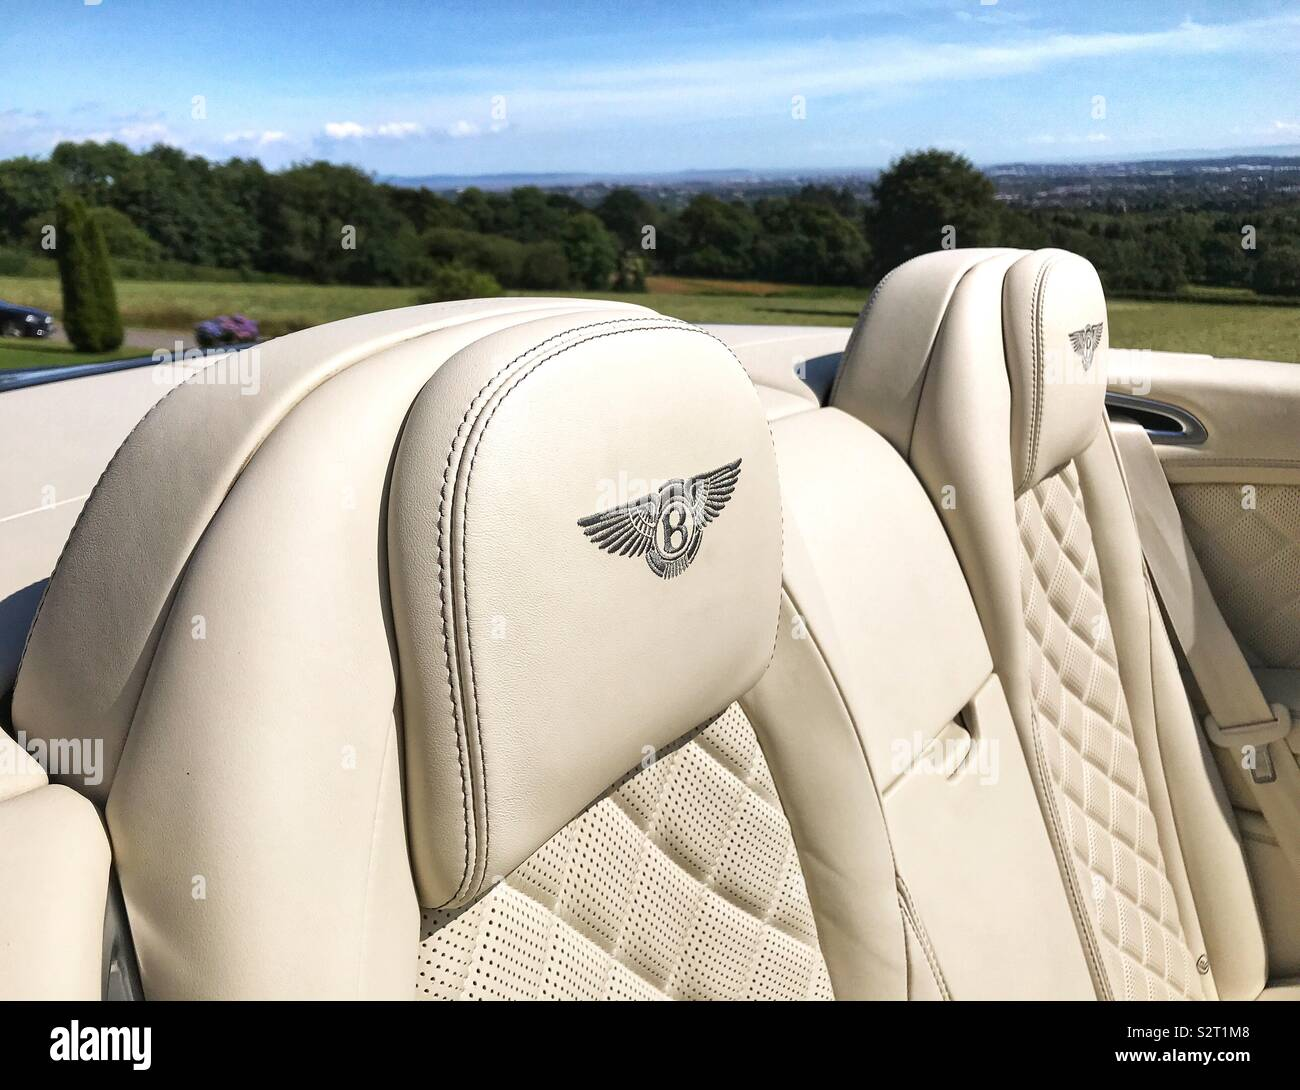 Bentley logo on the back of leather seats in a convertible - Stock Image